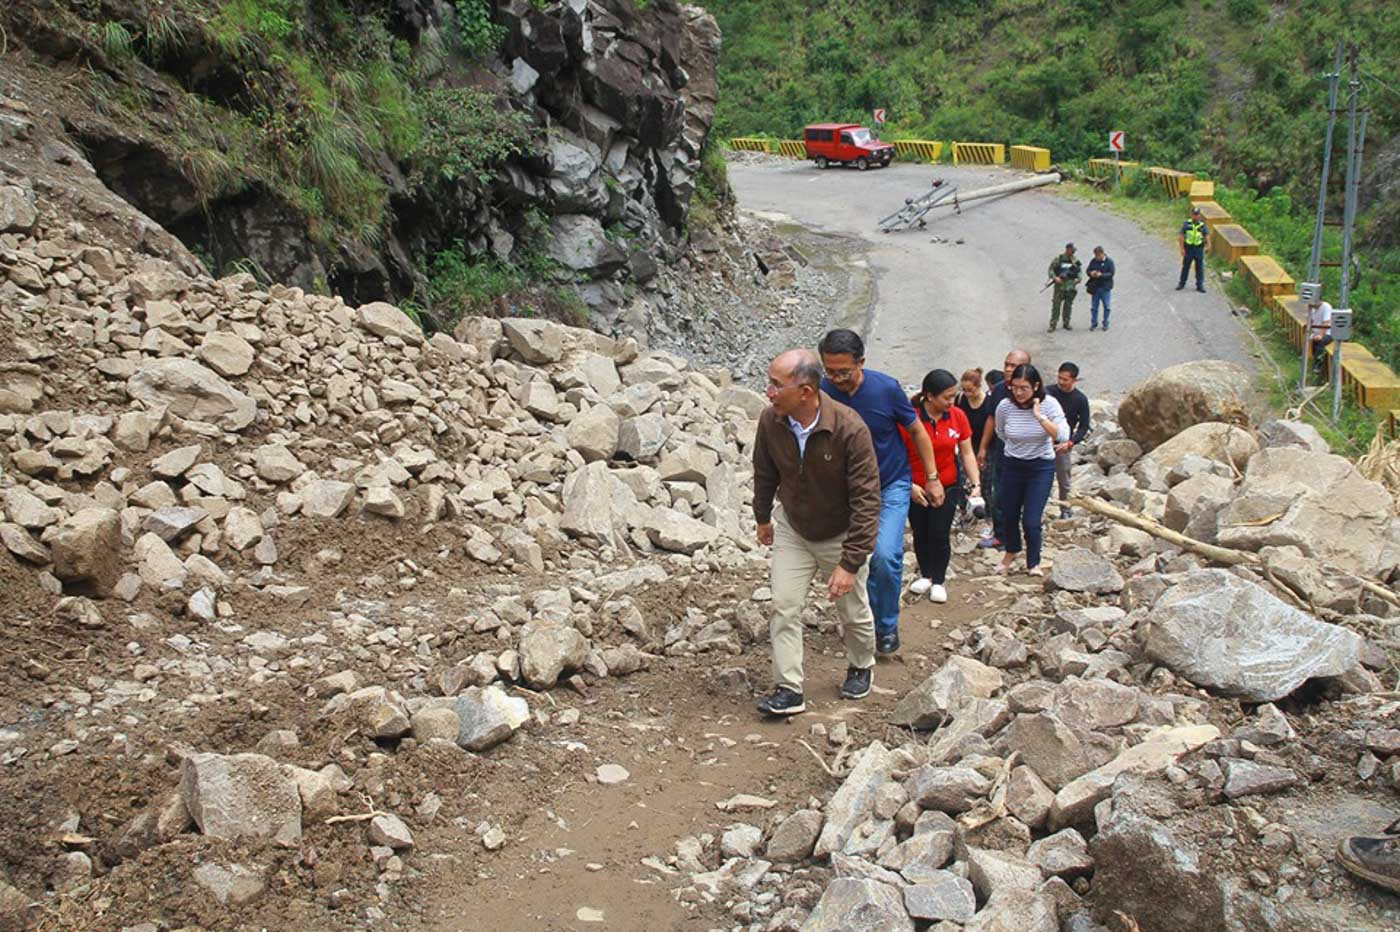 KENNON ROAD. Baguio Mayor Benjamin Magalong leads a surprise inspection of a portion of Kennon Road blocked by a landslide on August 16, 2019. Photo courtesy of Baguio City PIO